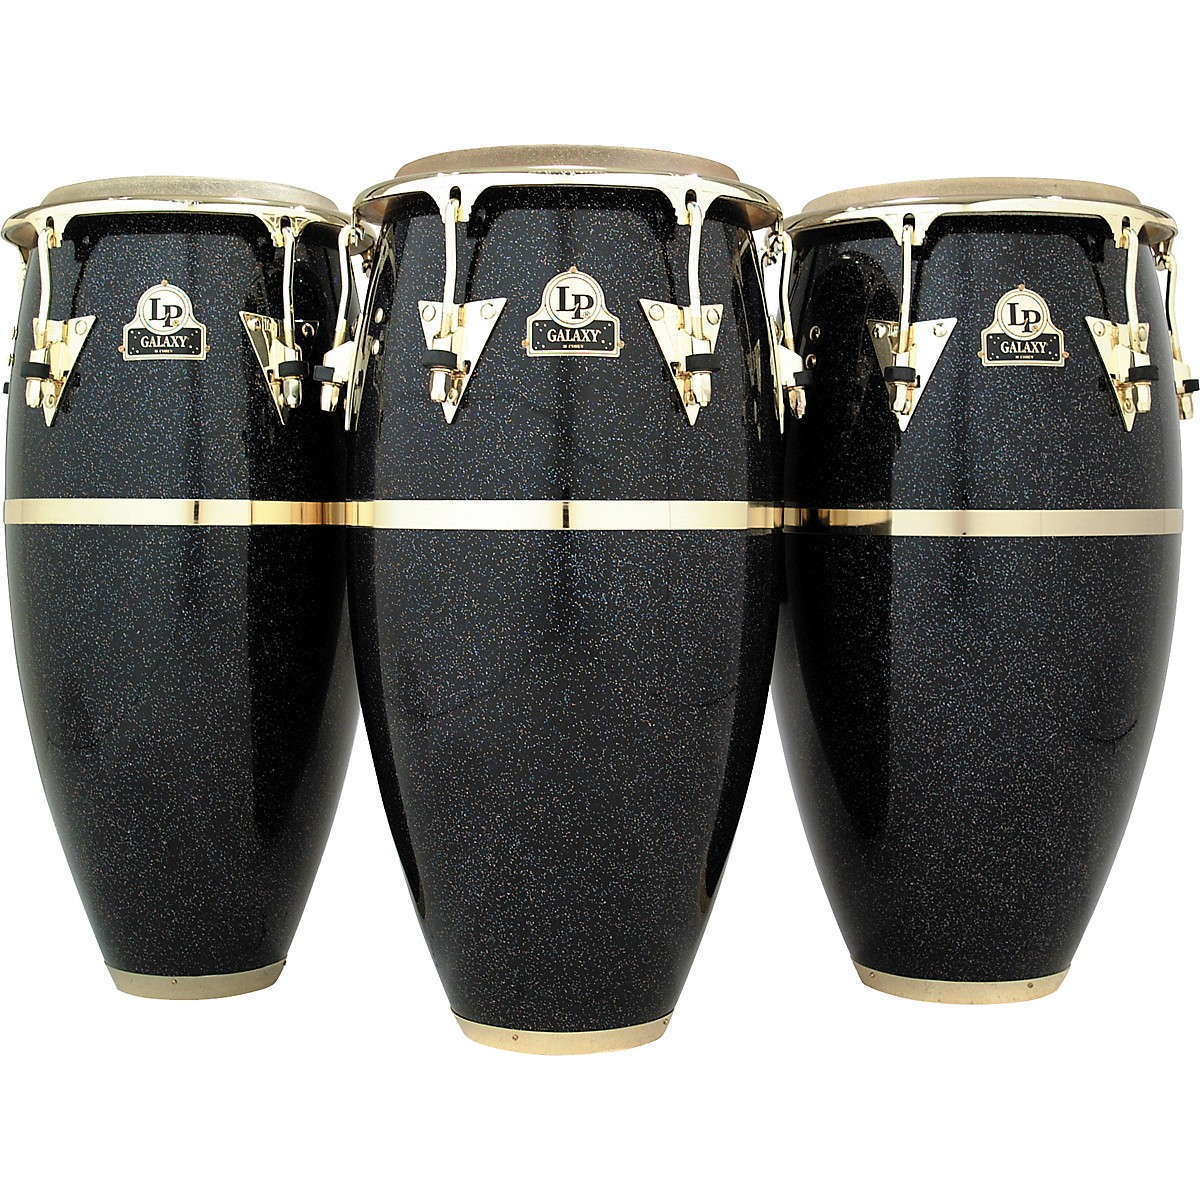 LP Galaxy Series Fiberglass Conga with Gold Hardware